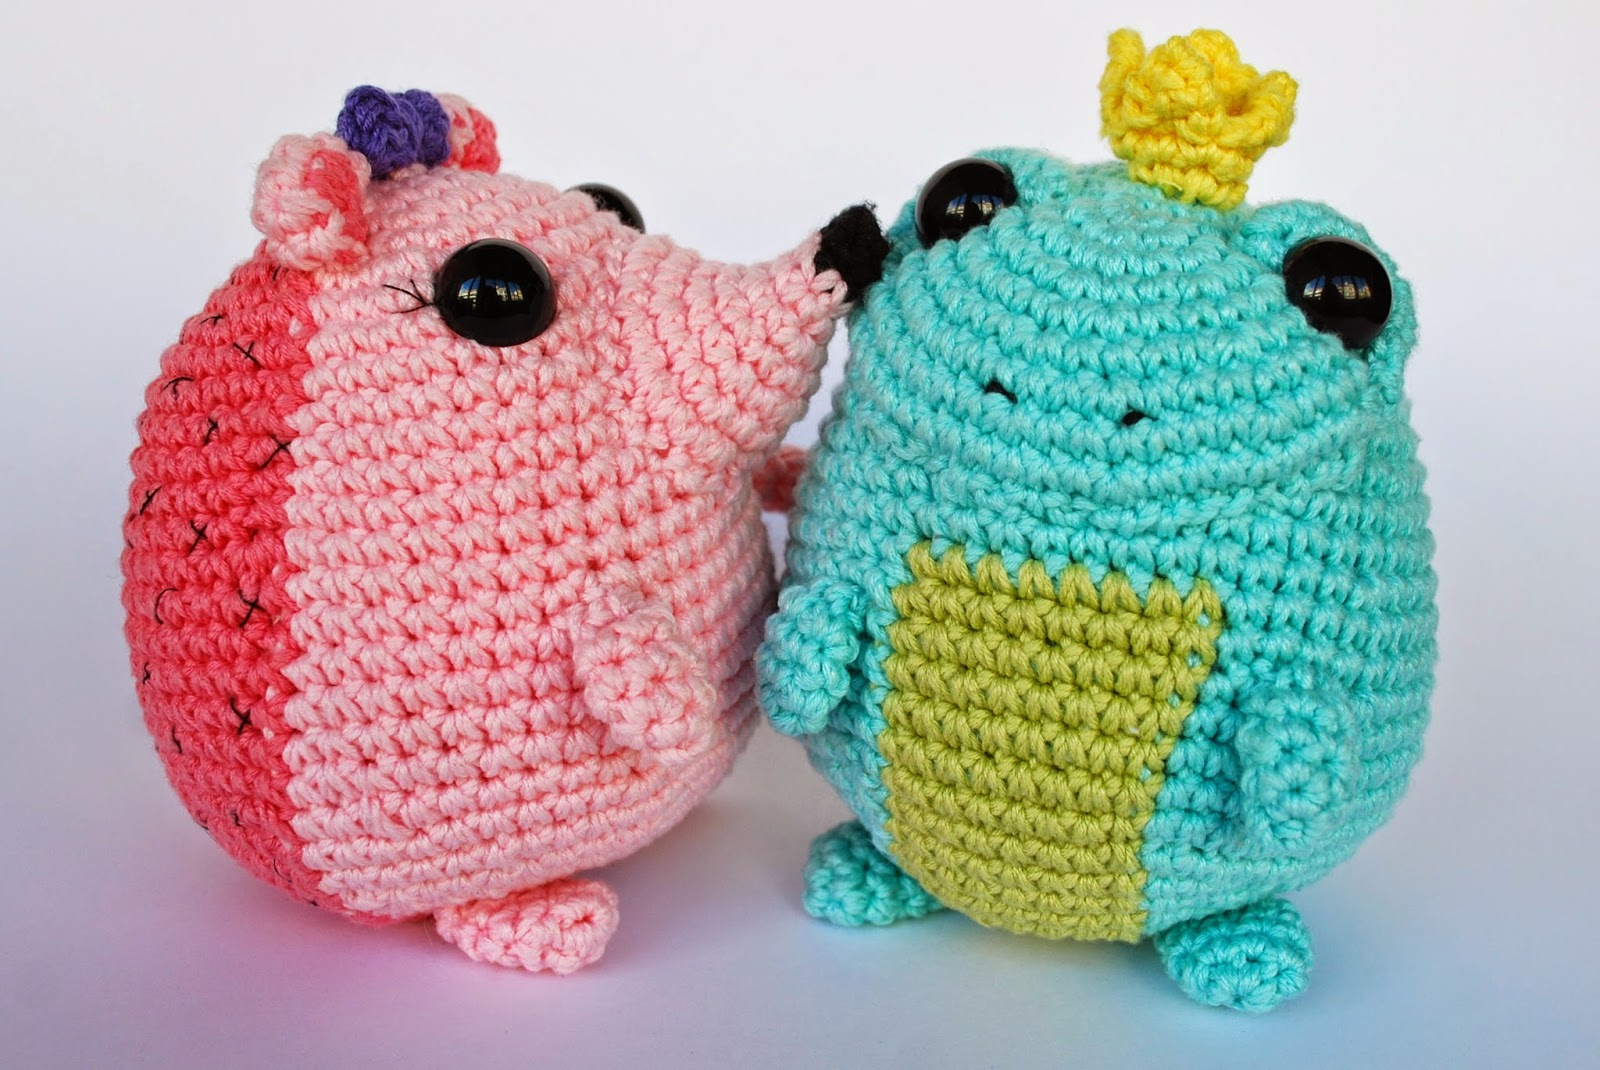 amigurumi toad and hedgehog